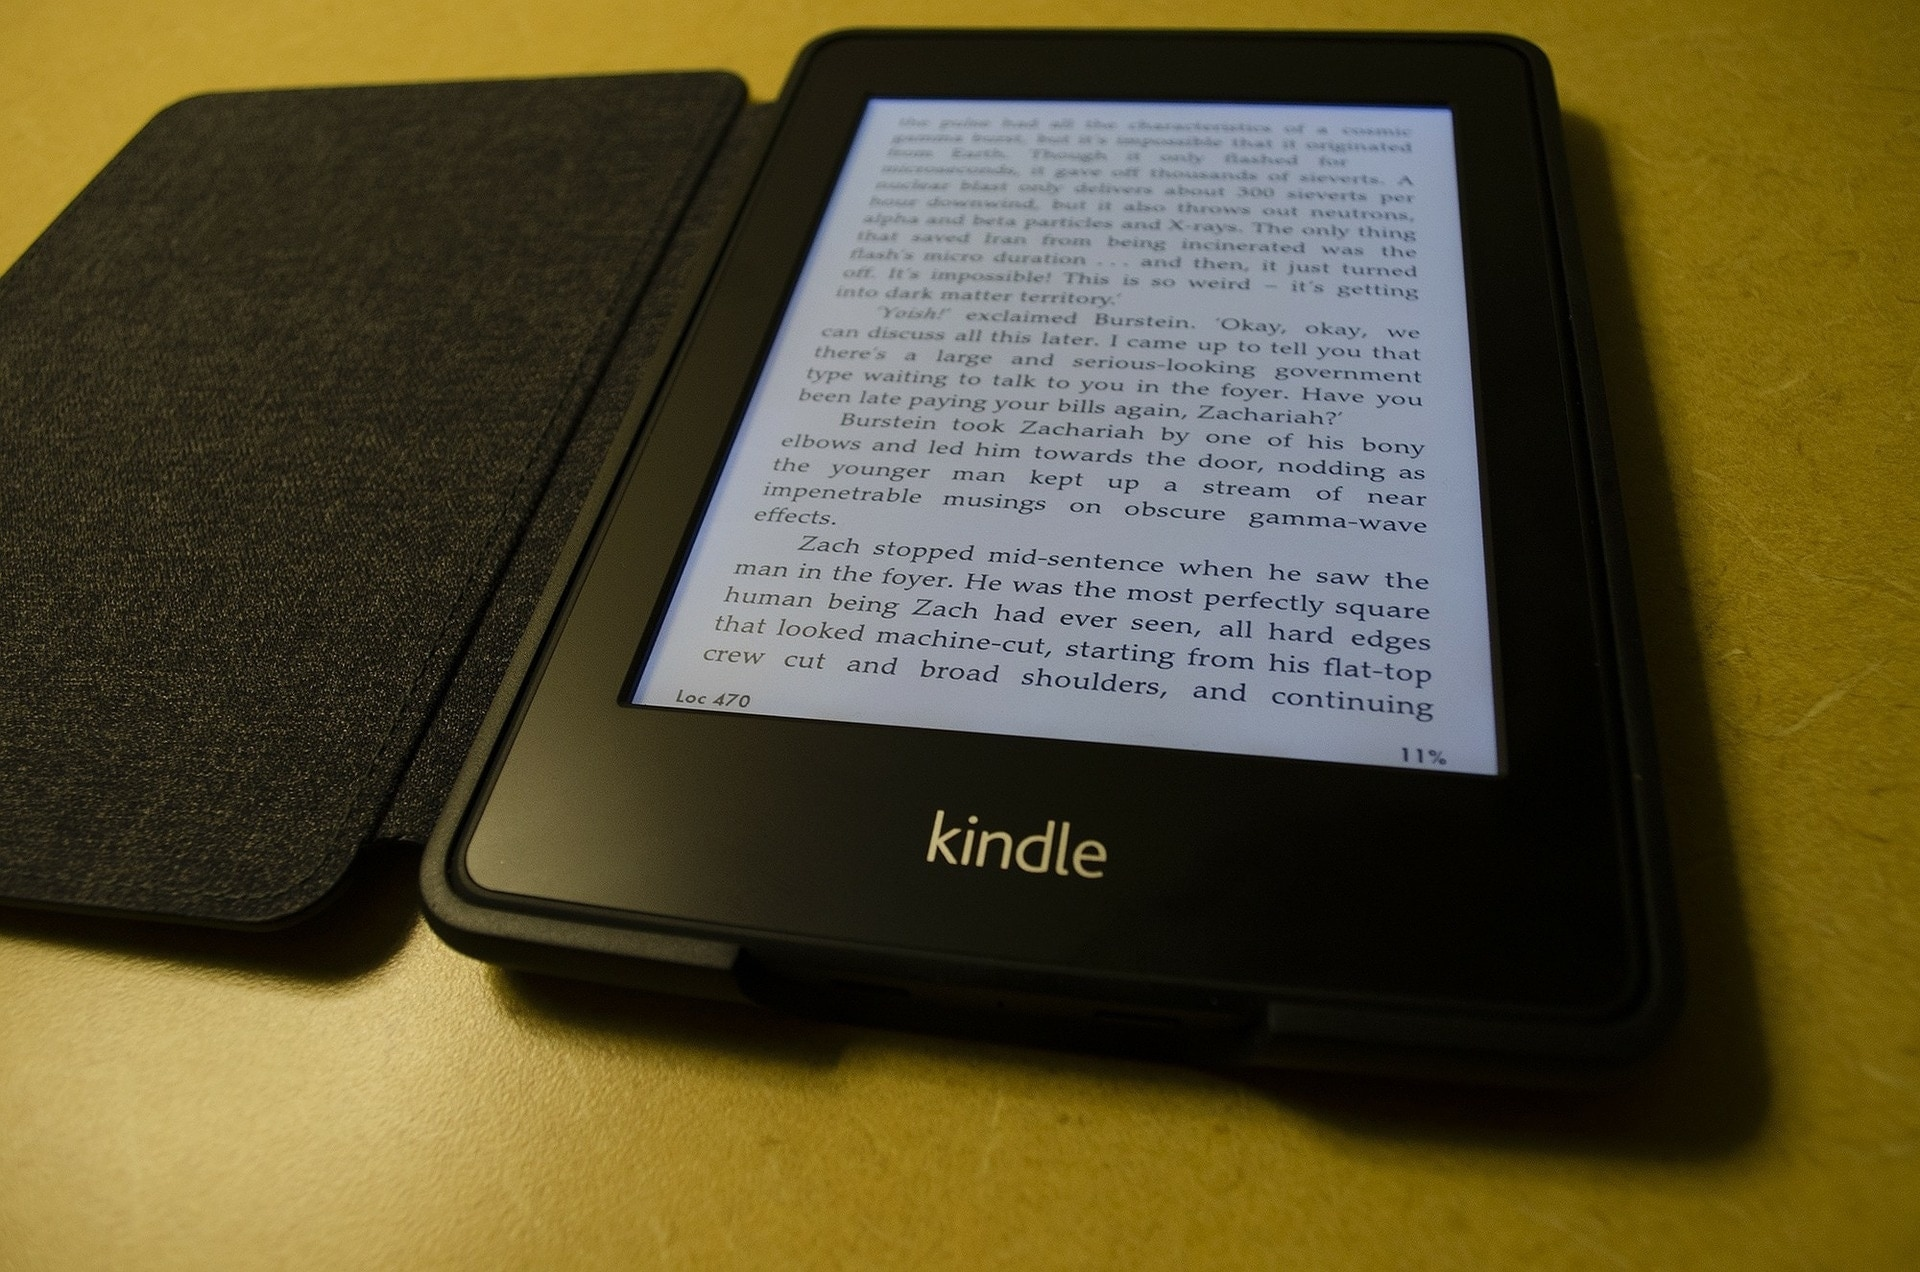 Read Book on Kindle Paperwhite